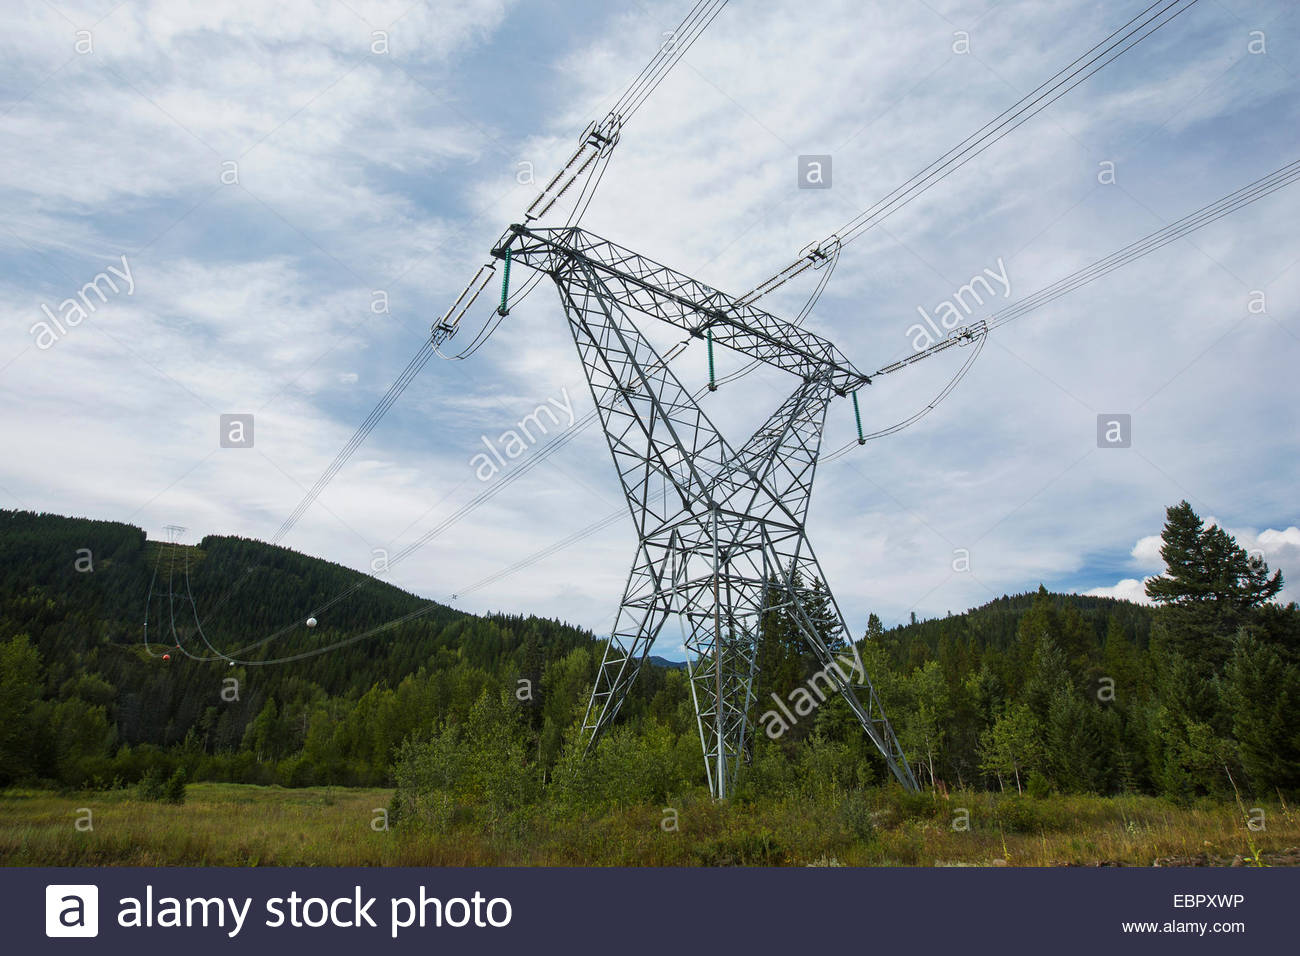 Power lines in rural field - Stock Image